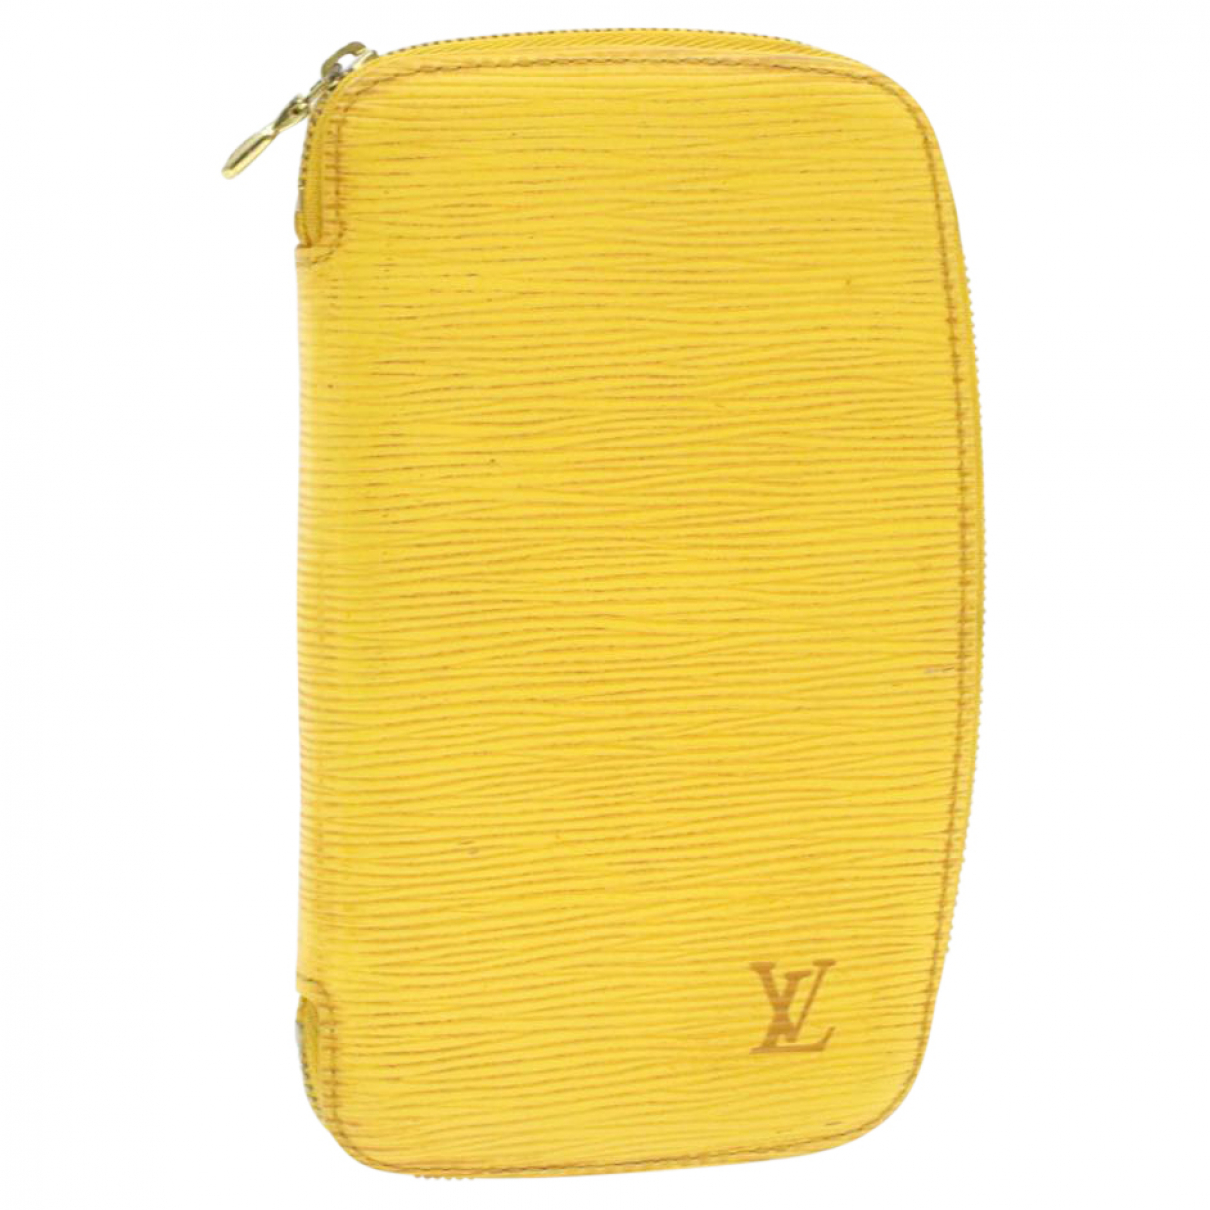 Louis Vuitton \N Yellow scarf for Women \N